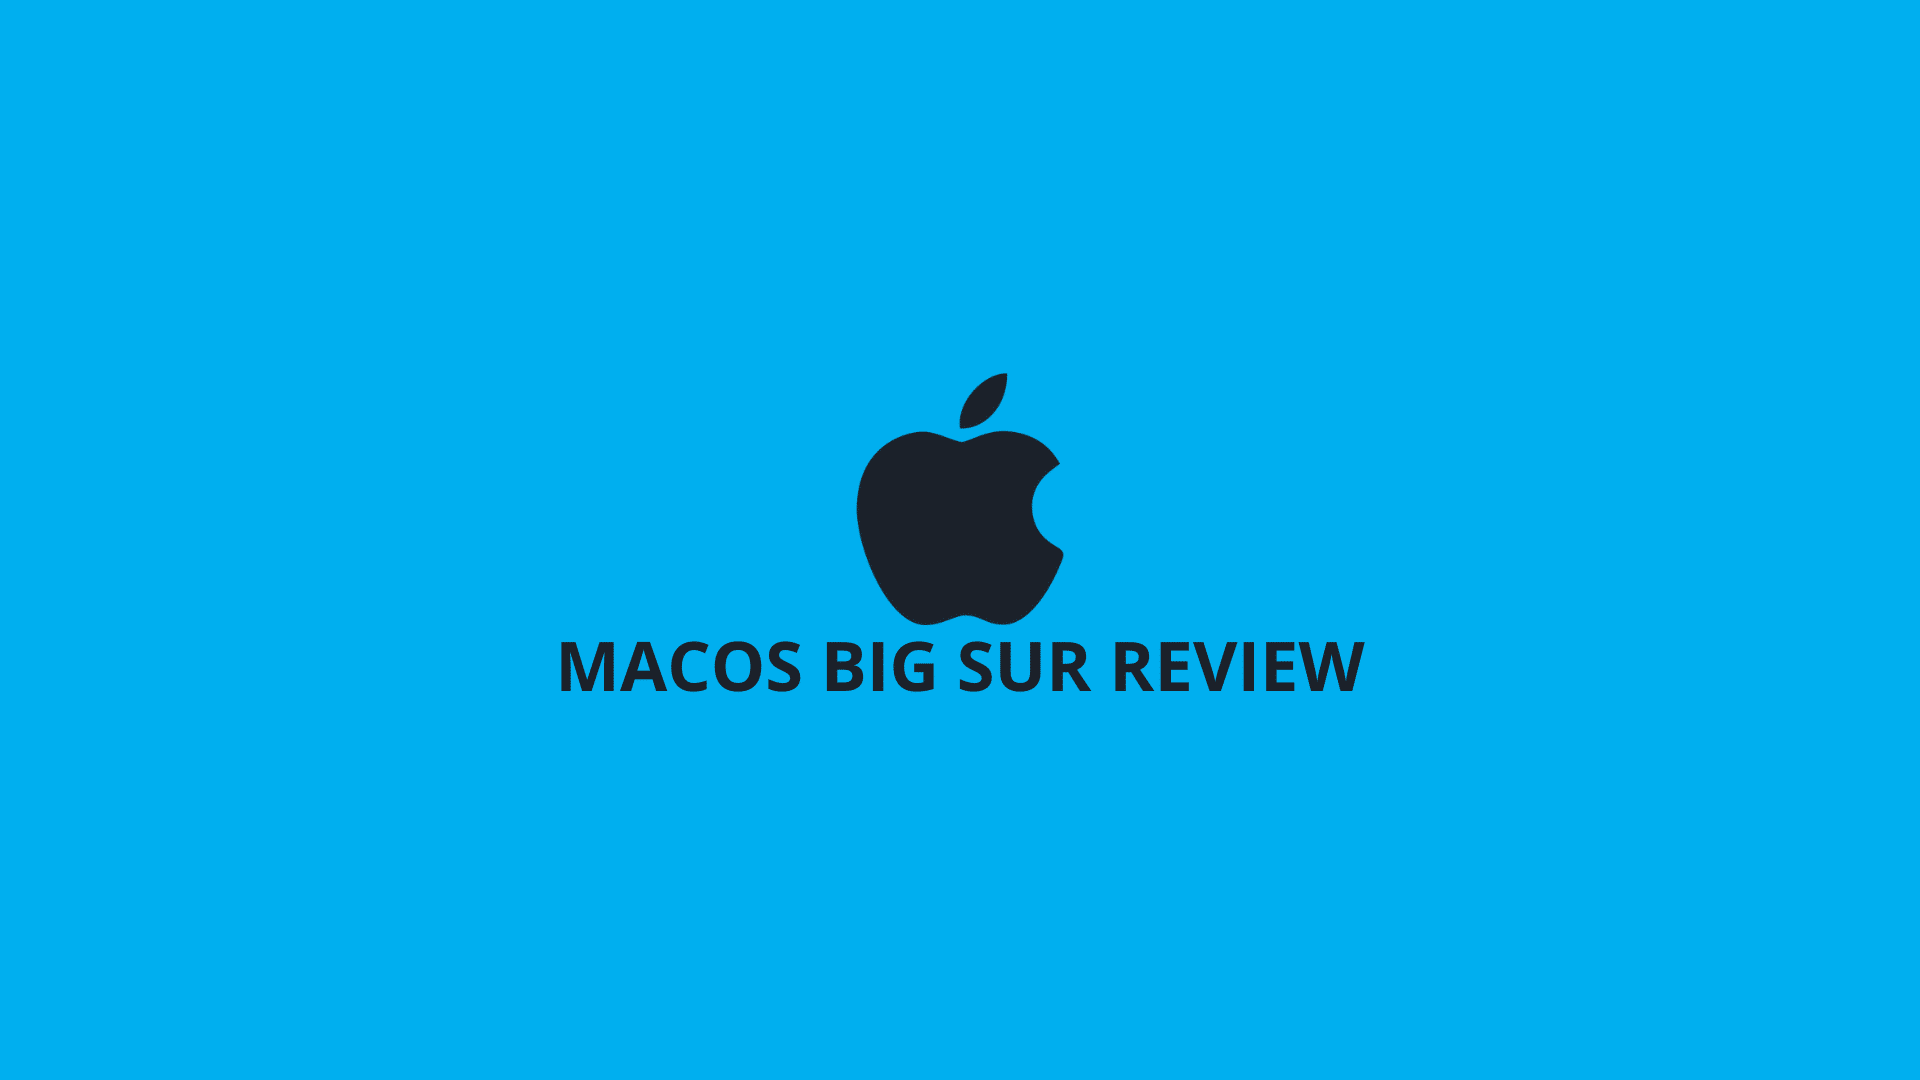 macOS Big Sur Review